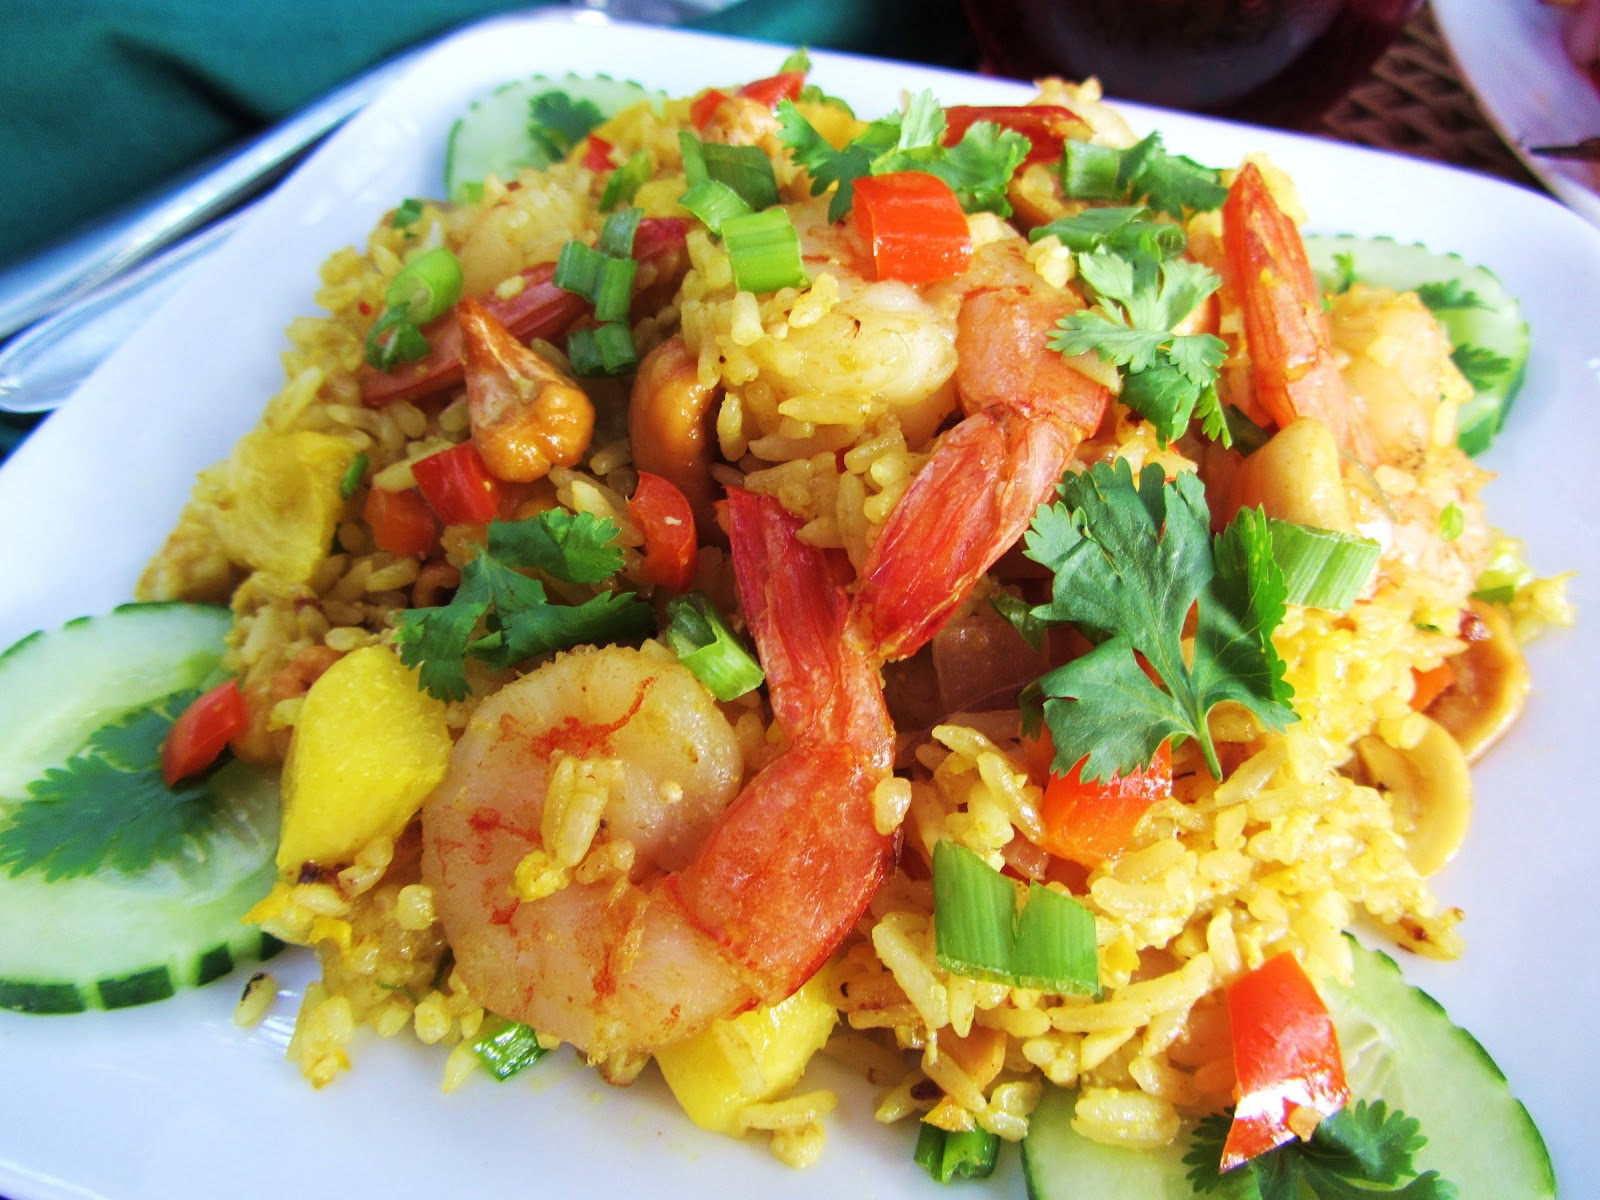 Let's eat.....simple!: Thai Pineapple Fried-Rice with Shrimp